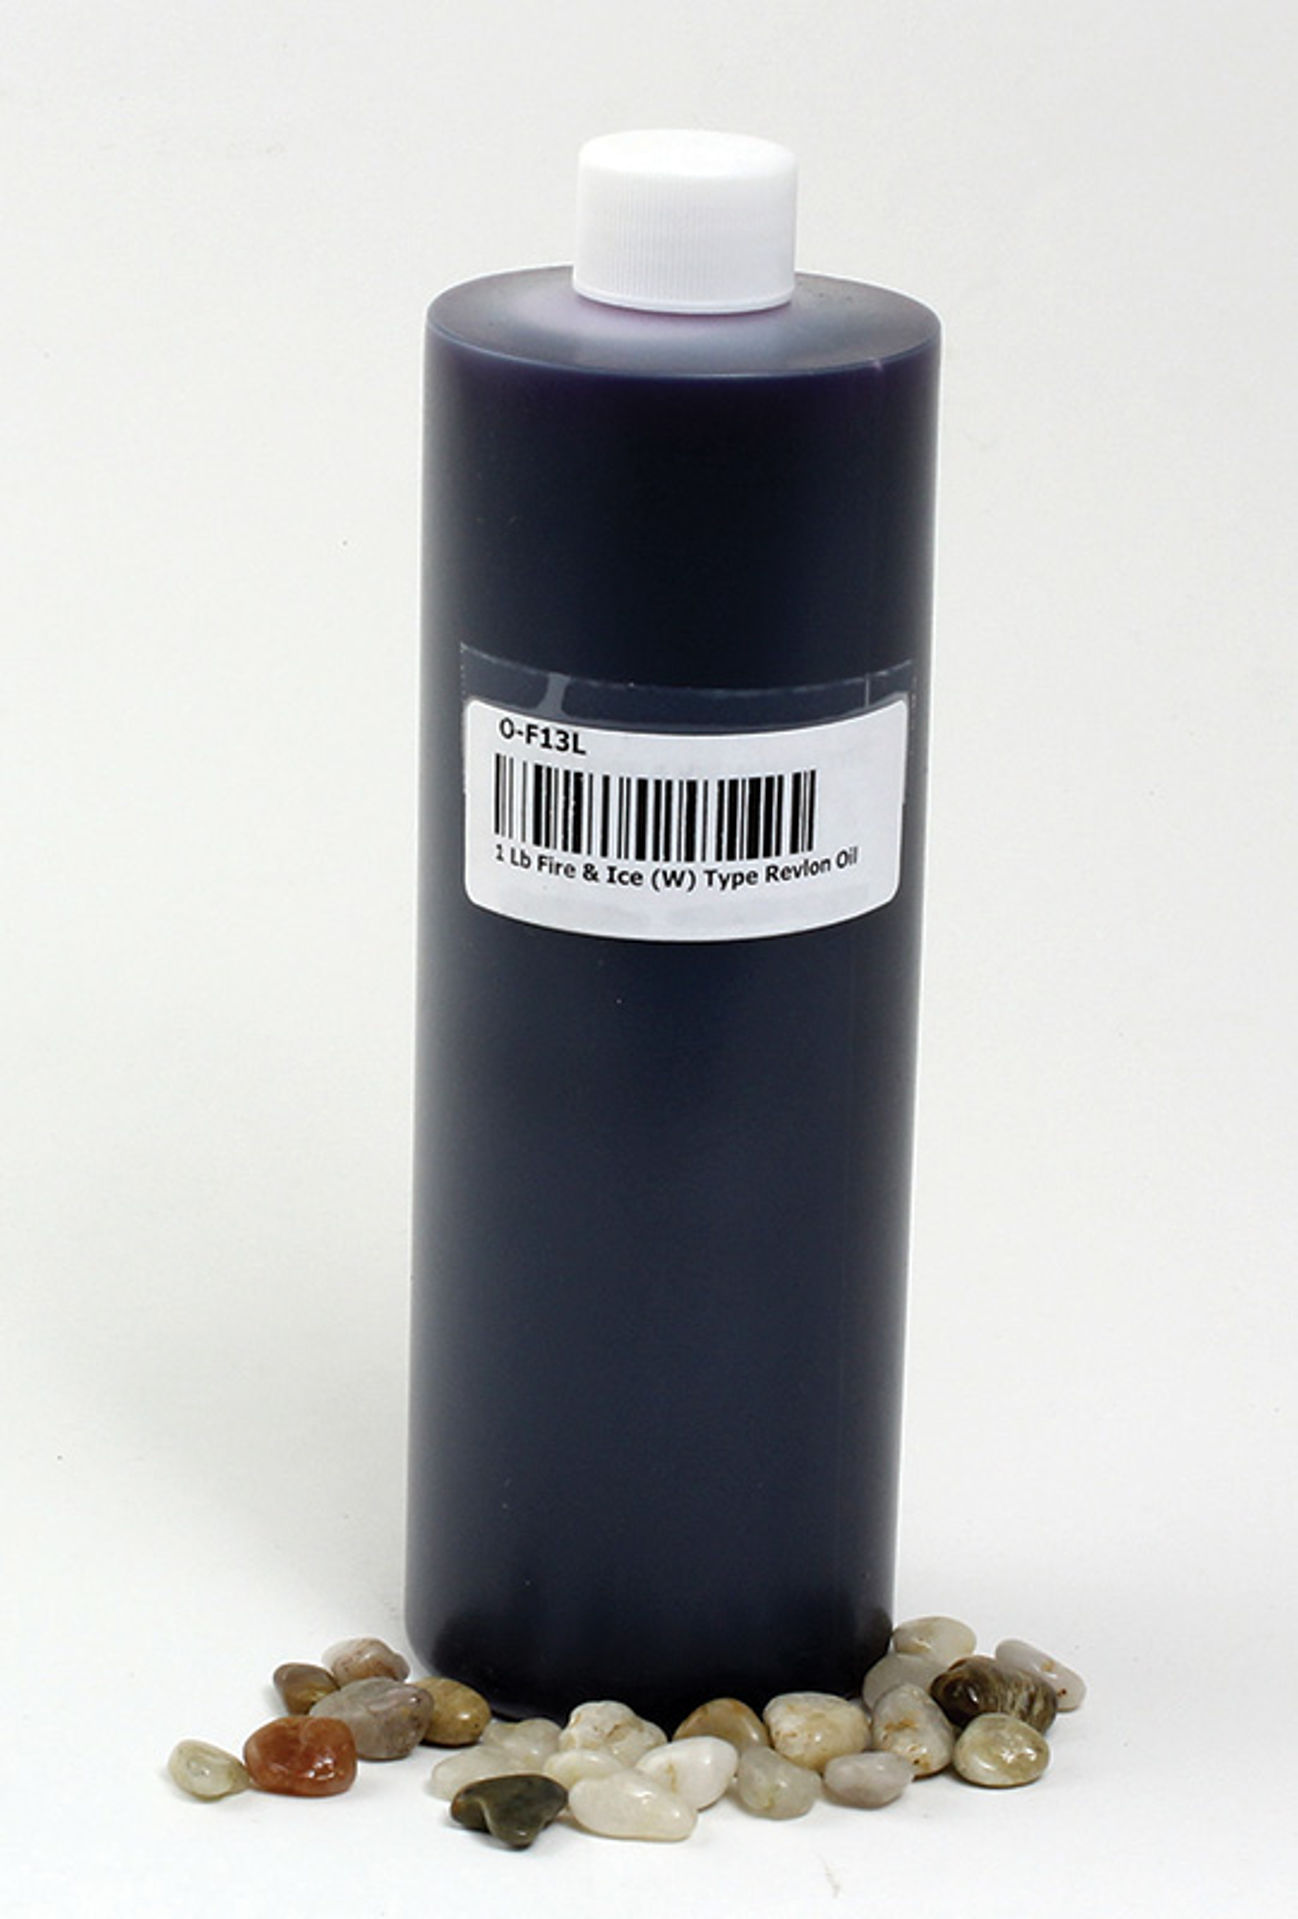 Picture of 1 Lb Fire & Ice (W) Type Revlon Oil